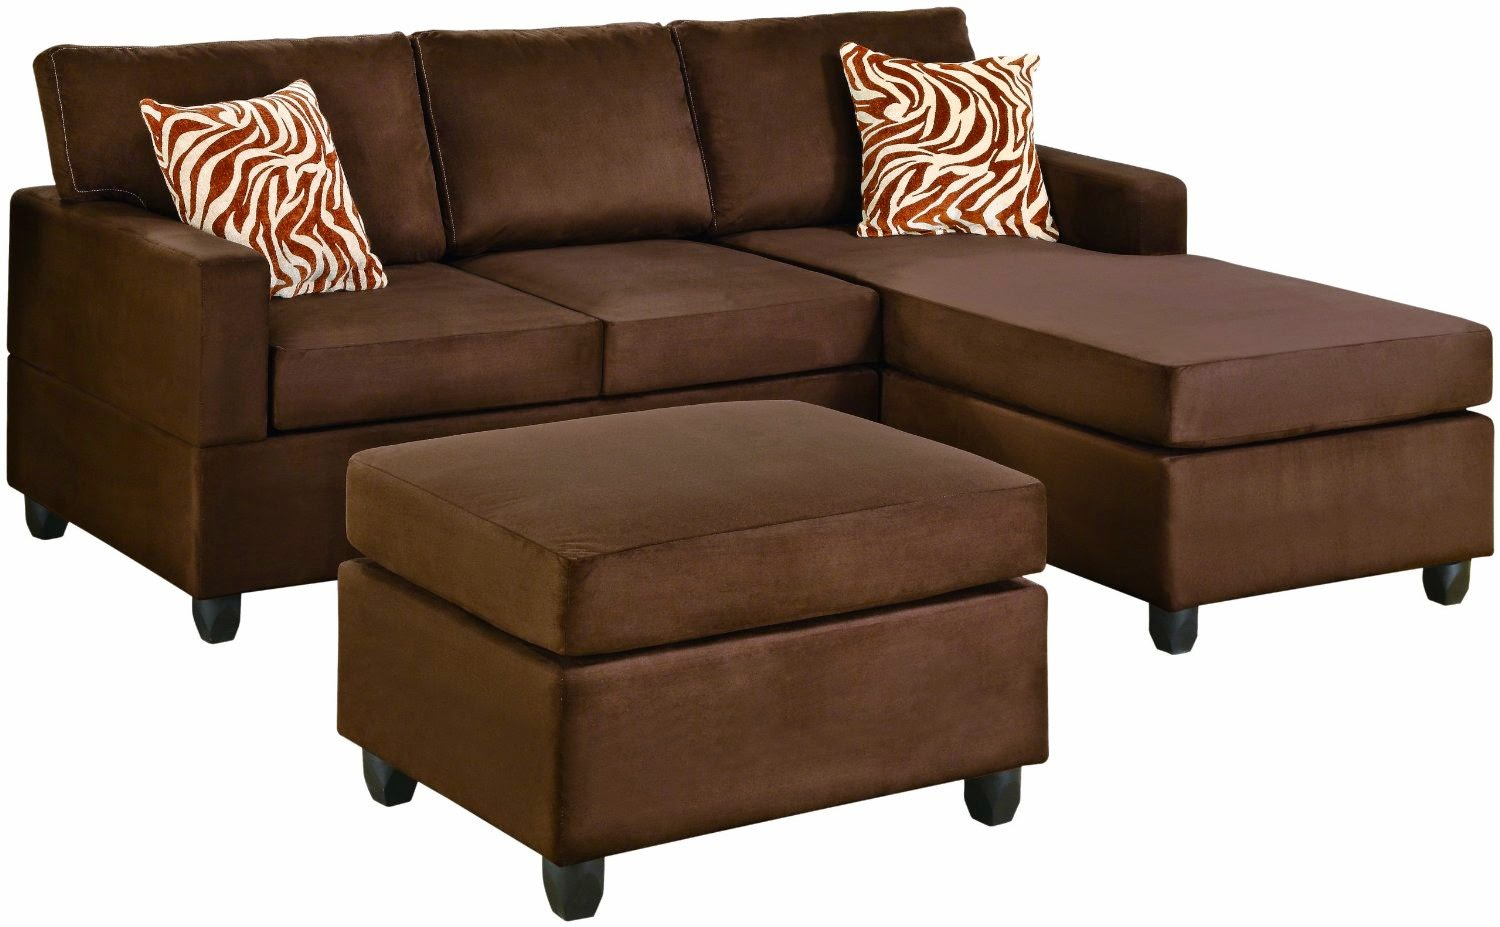 Couch with chaise for Brown microfiber chaise lounge